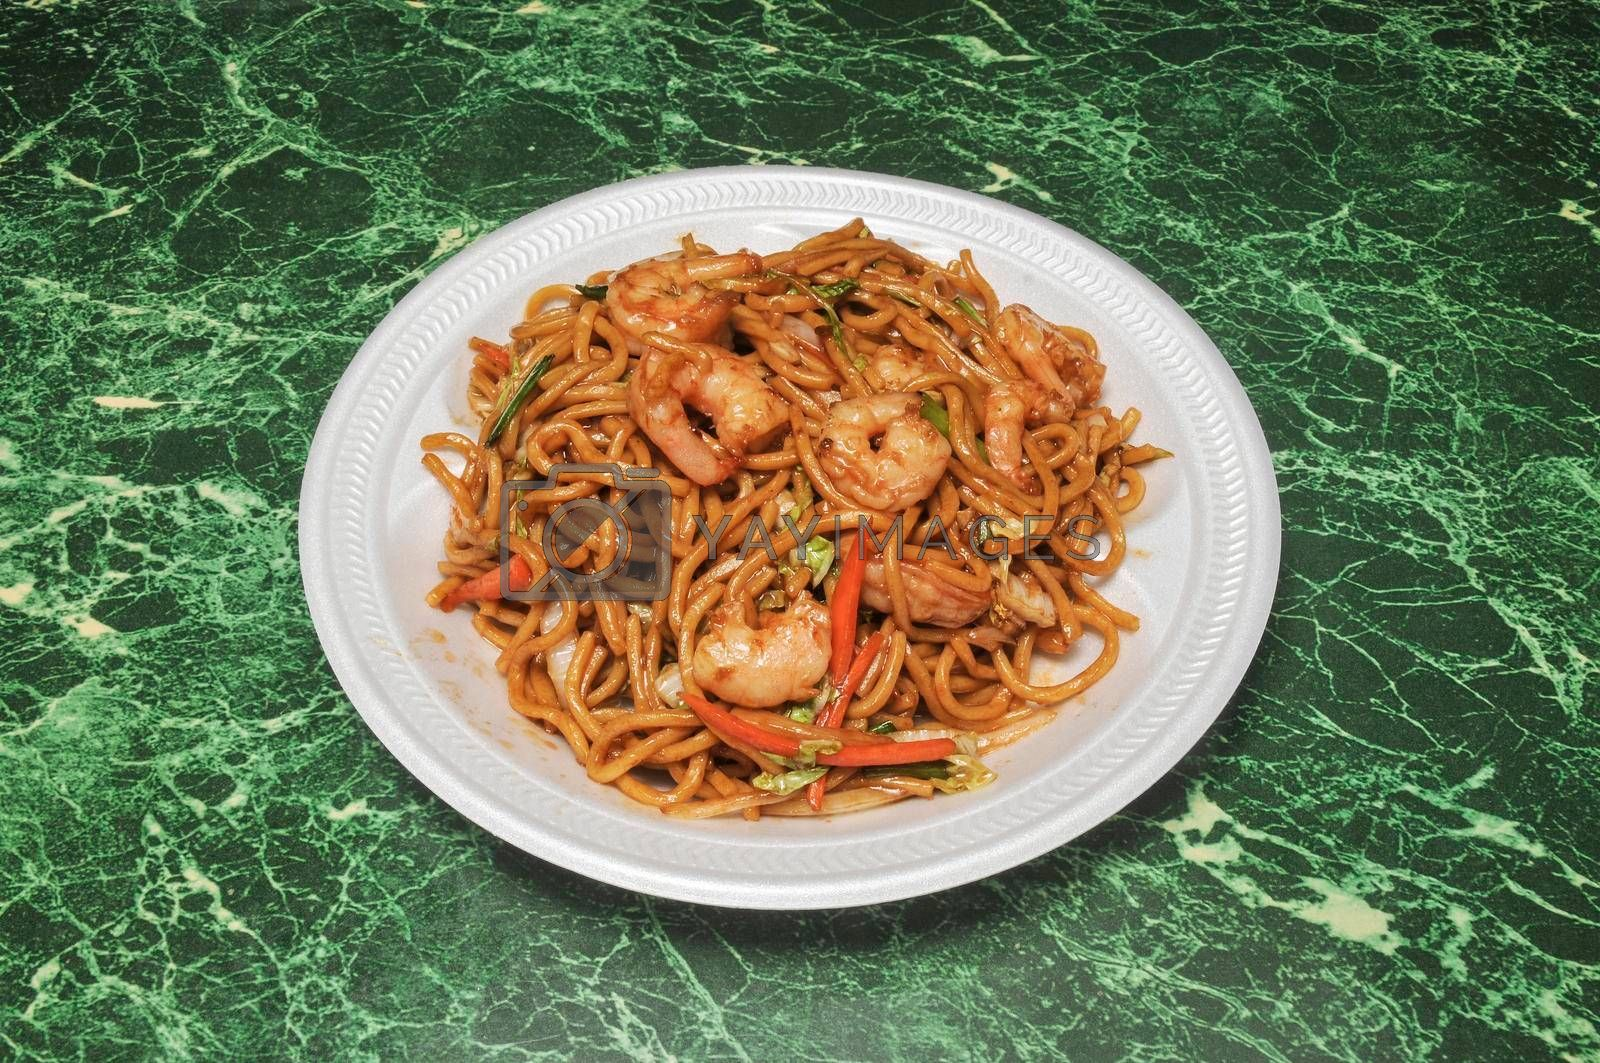 Traditional and authentic Chinese cuisine known as shrimp lo mein